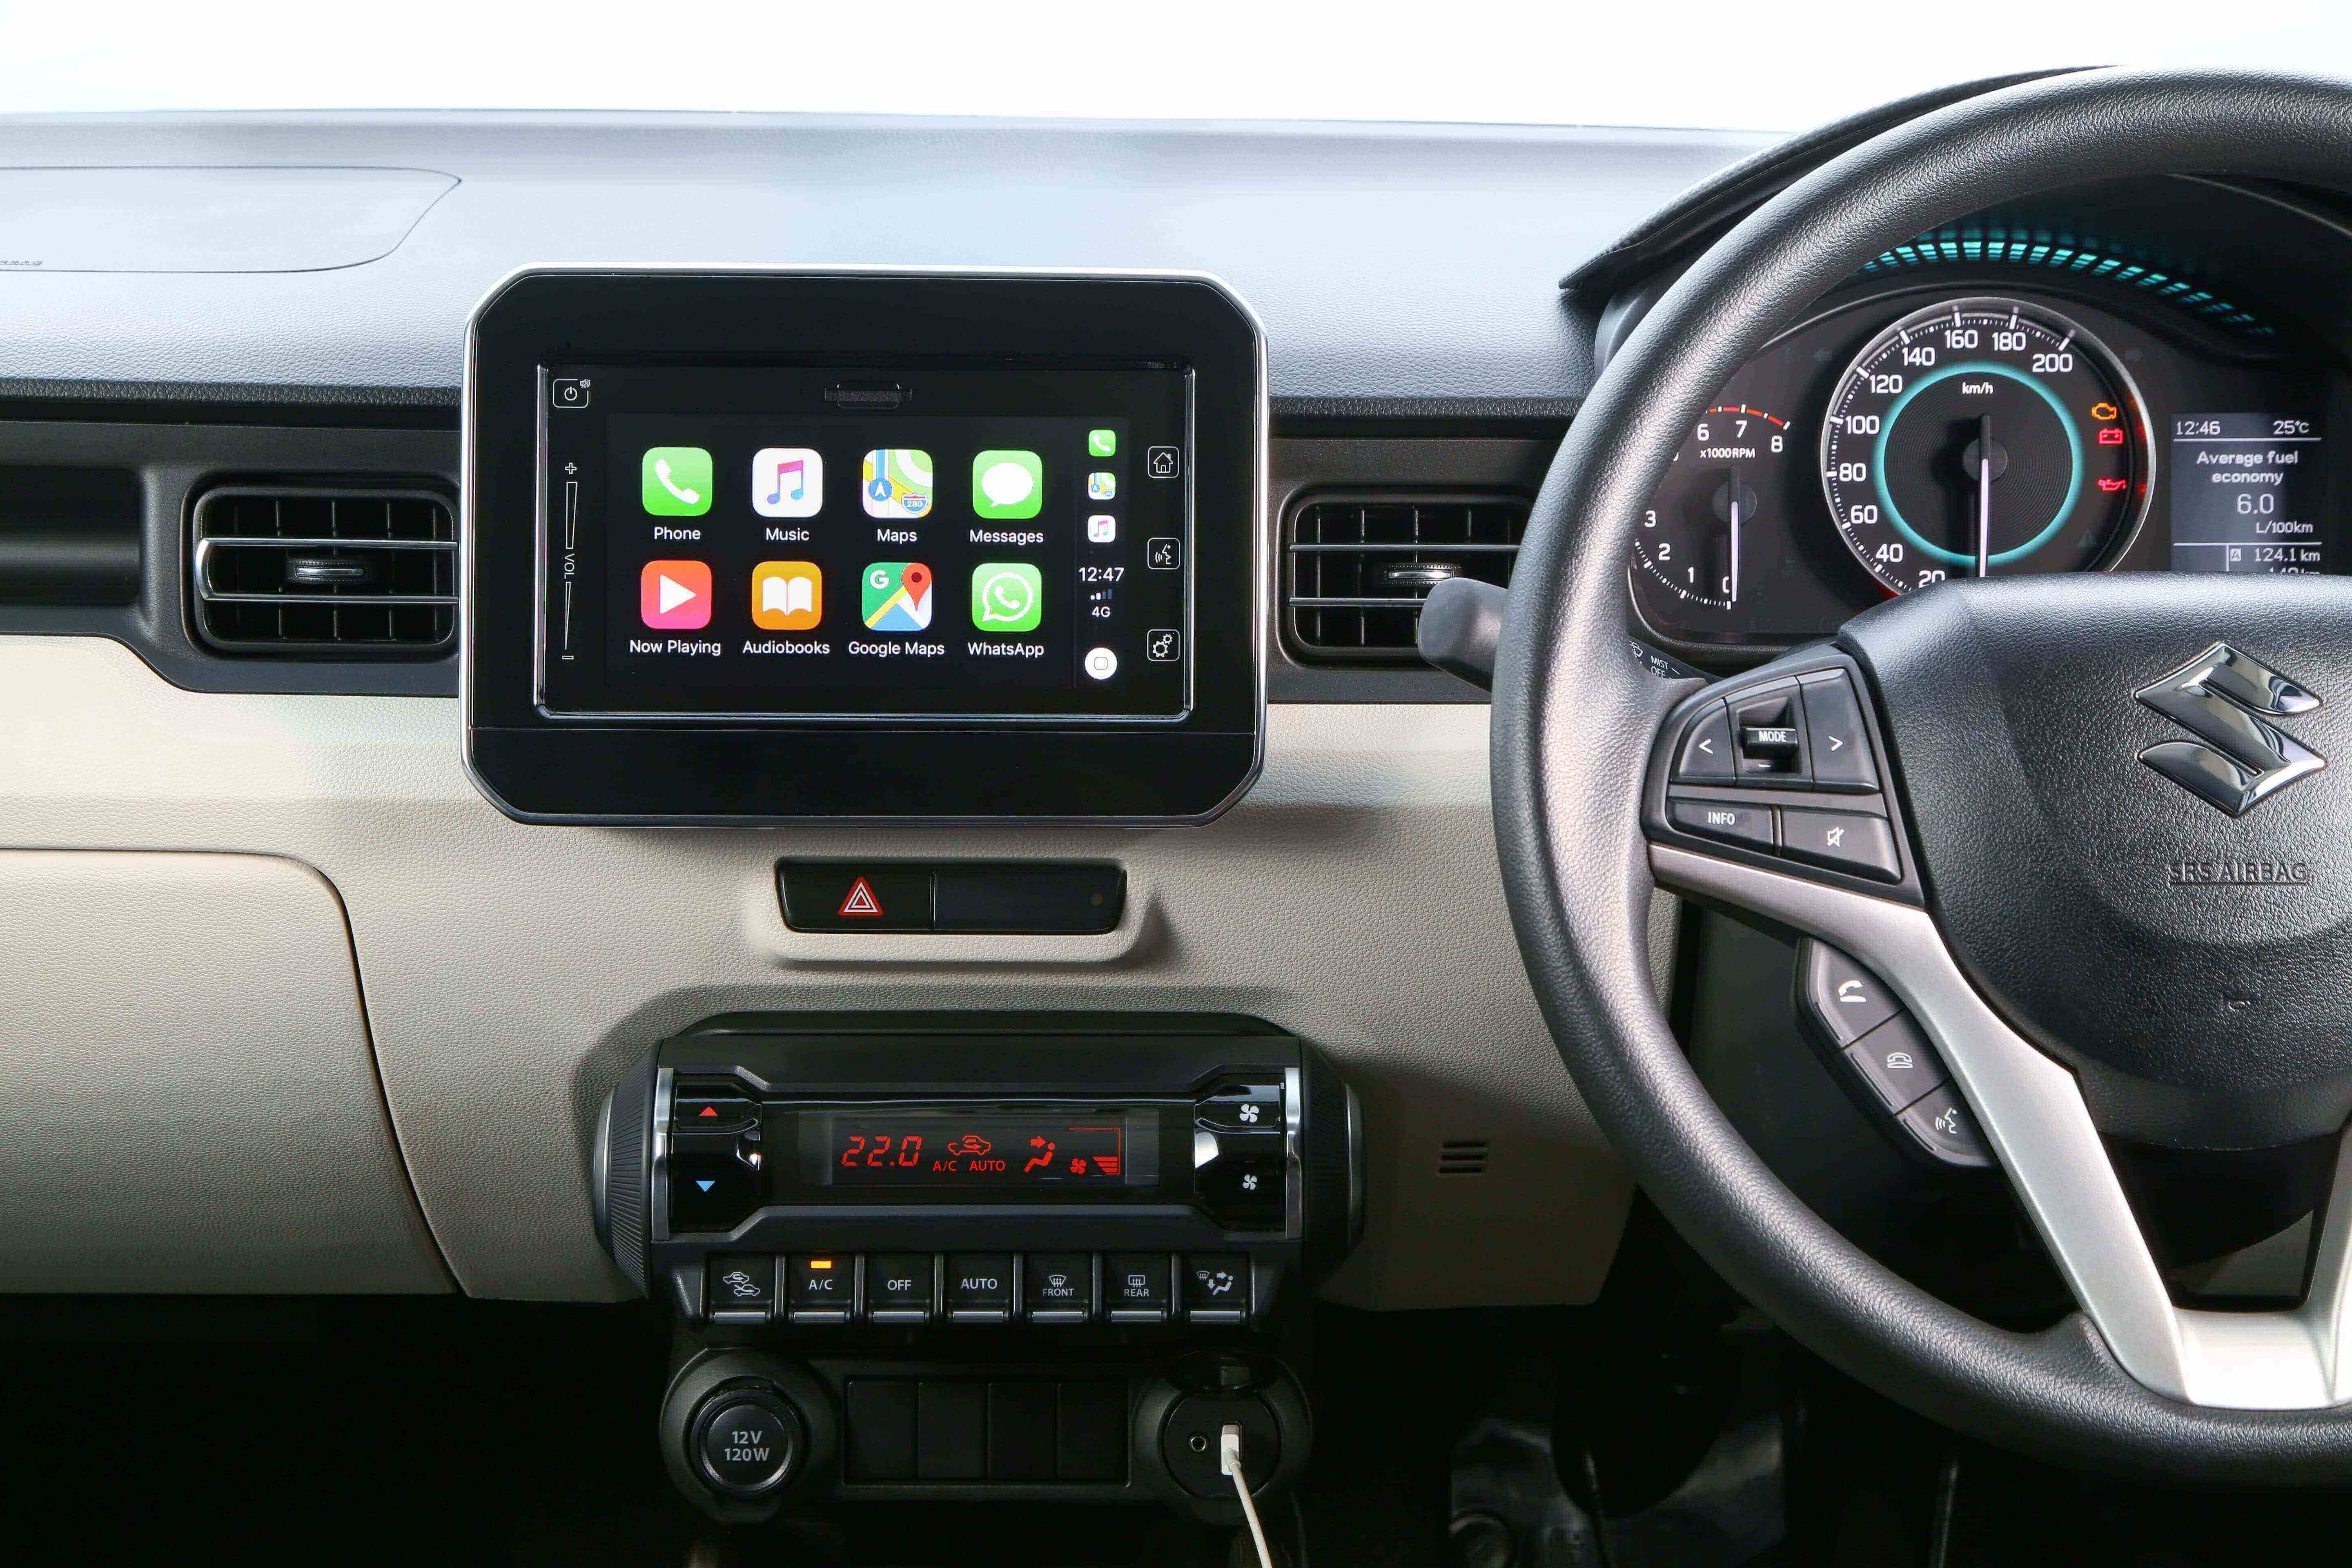 The updated infotainment makes driving and tech a little easier